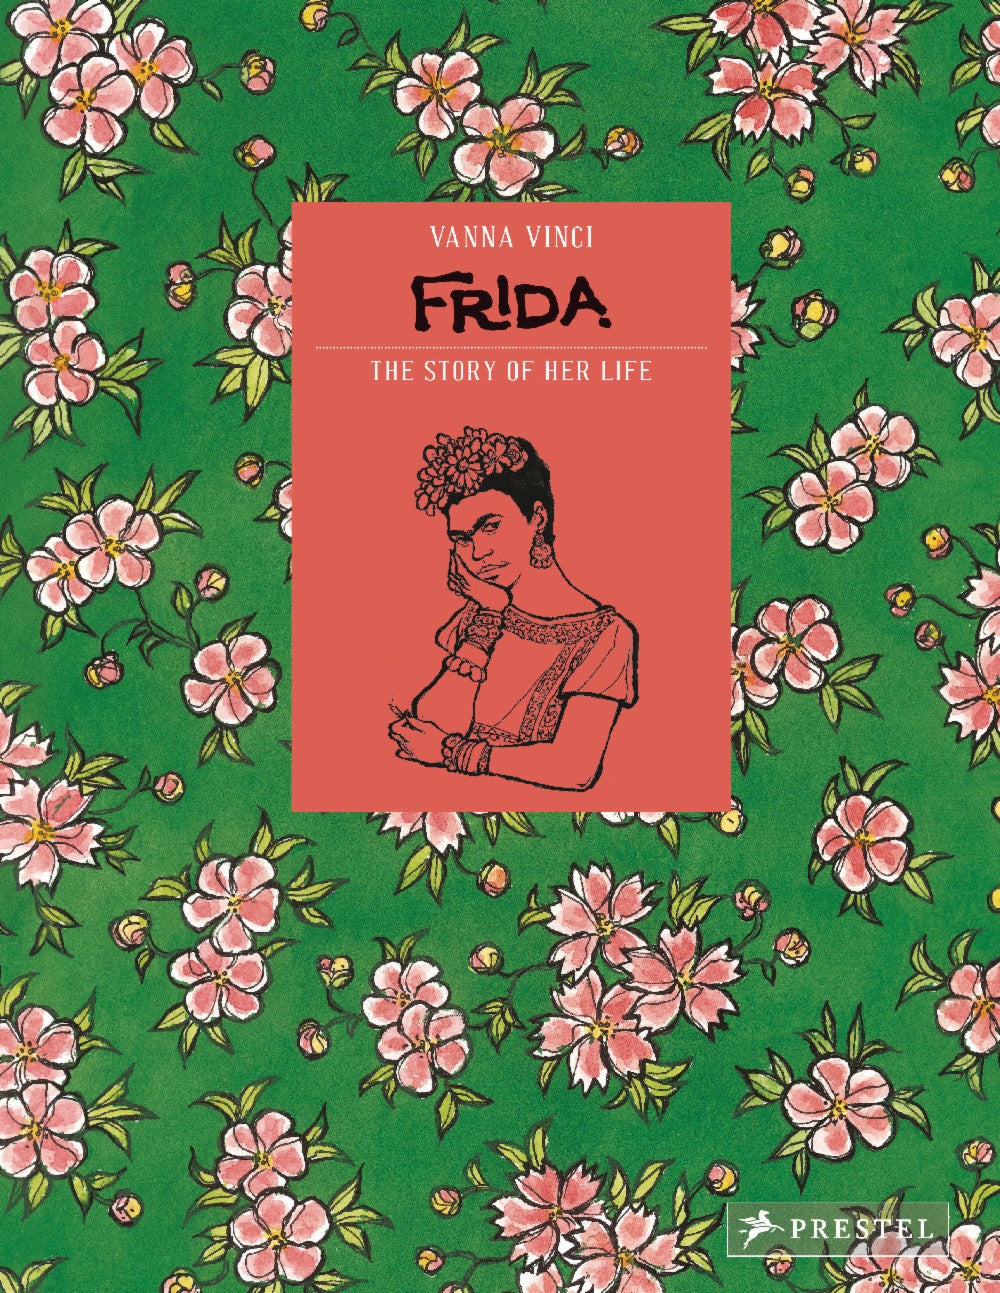 Frida Kahlo: The Story of Her Life by Vanna Vinci